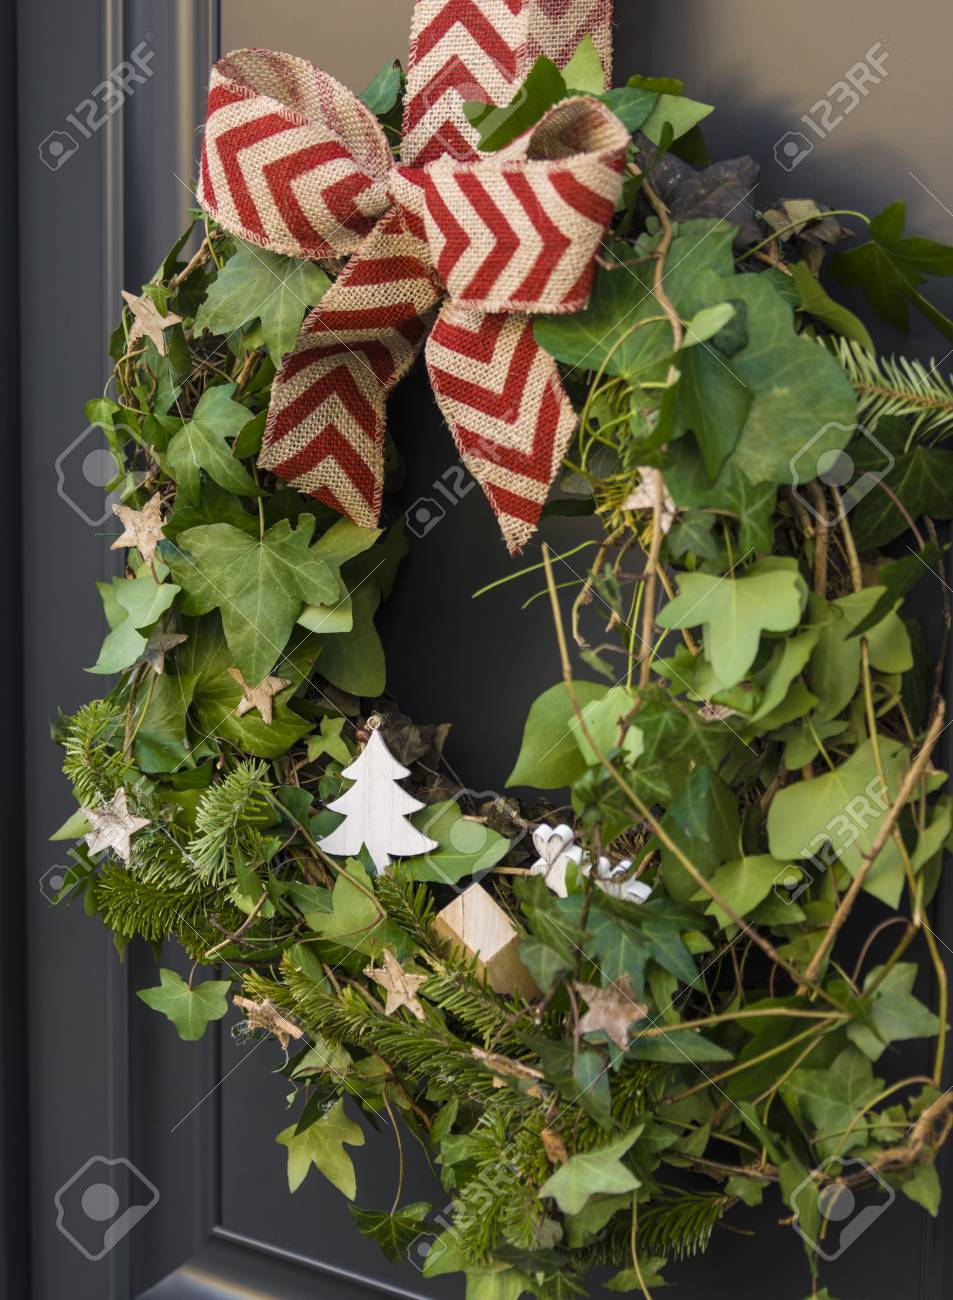 Front Door With A Christmas Wreath Of Ivy And Bows Stock Photo